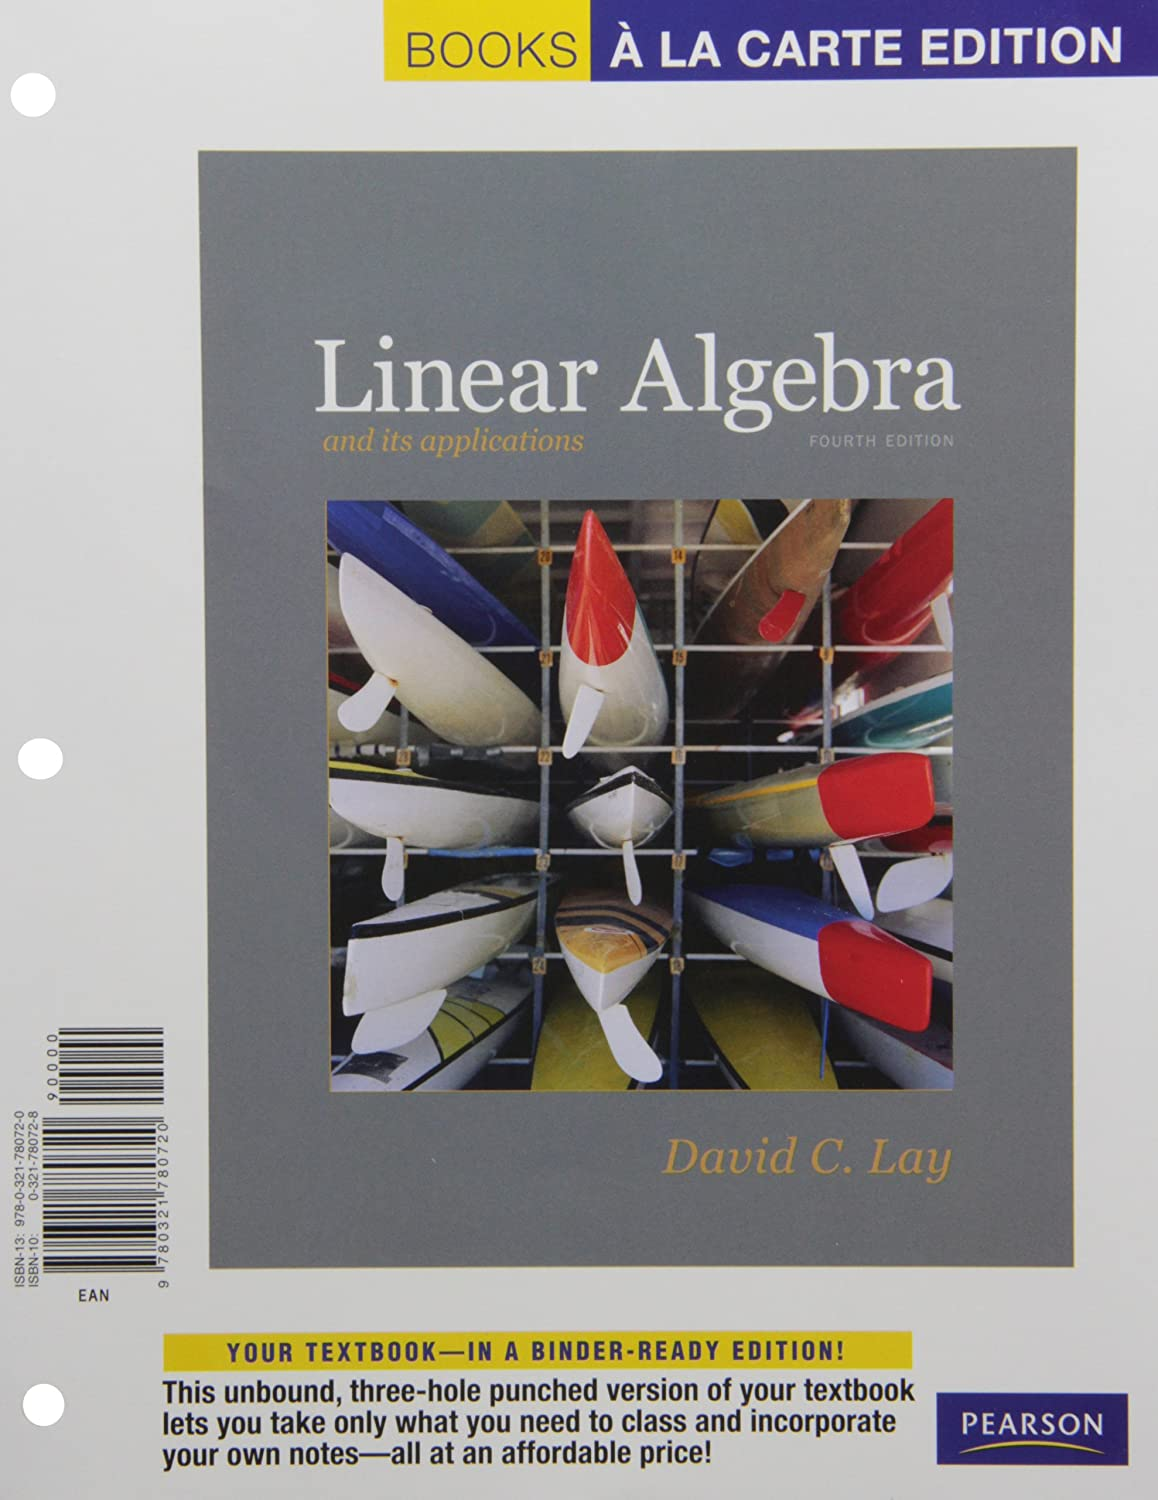 Linear Algebra, Fourth of july Version